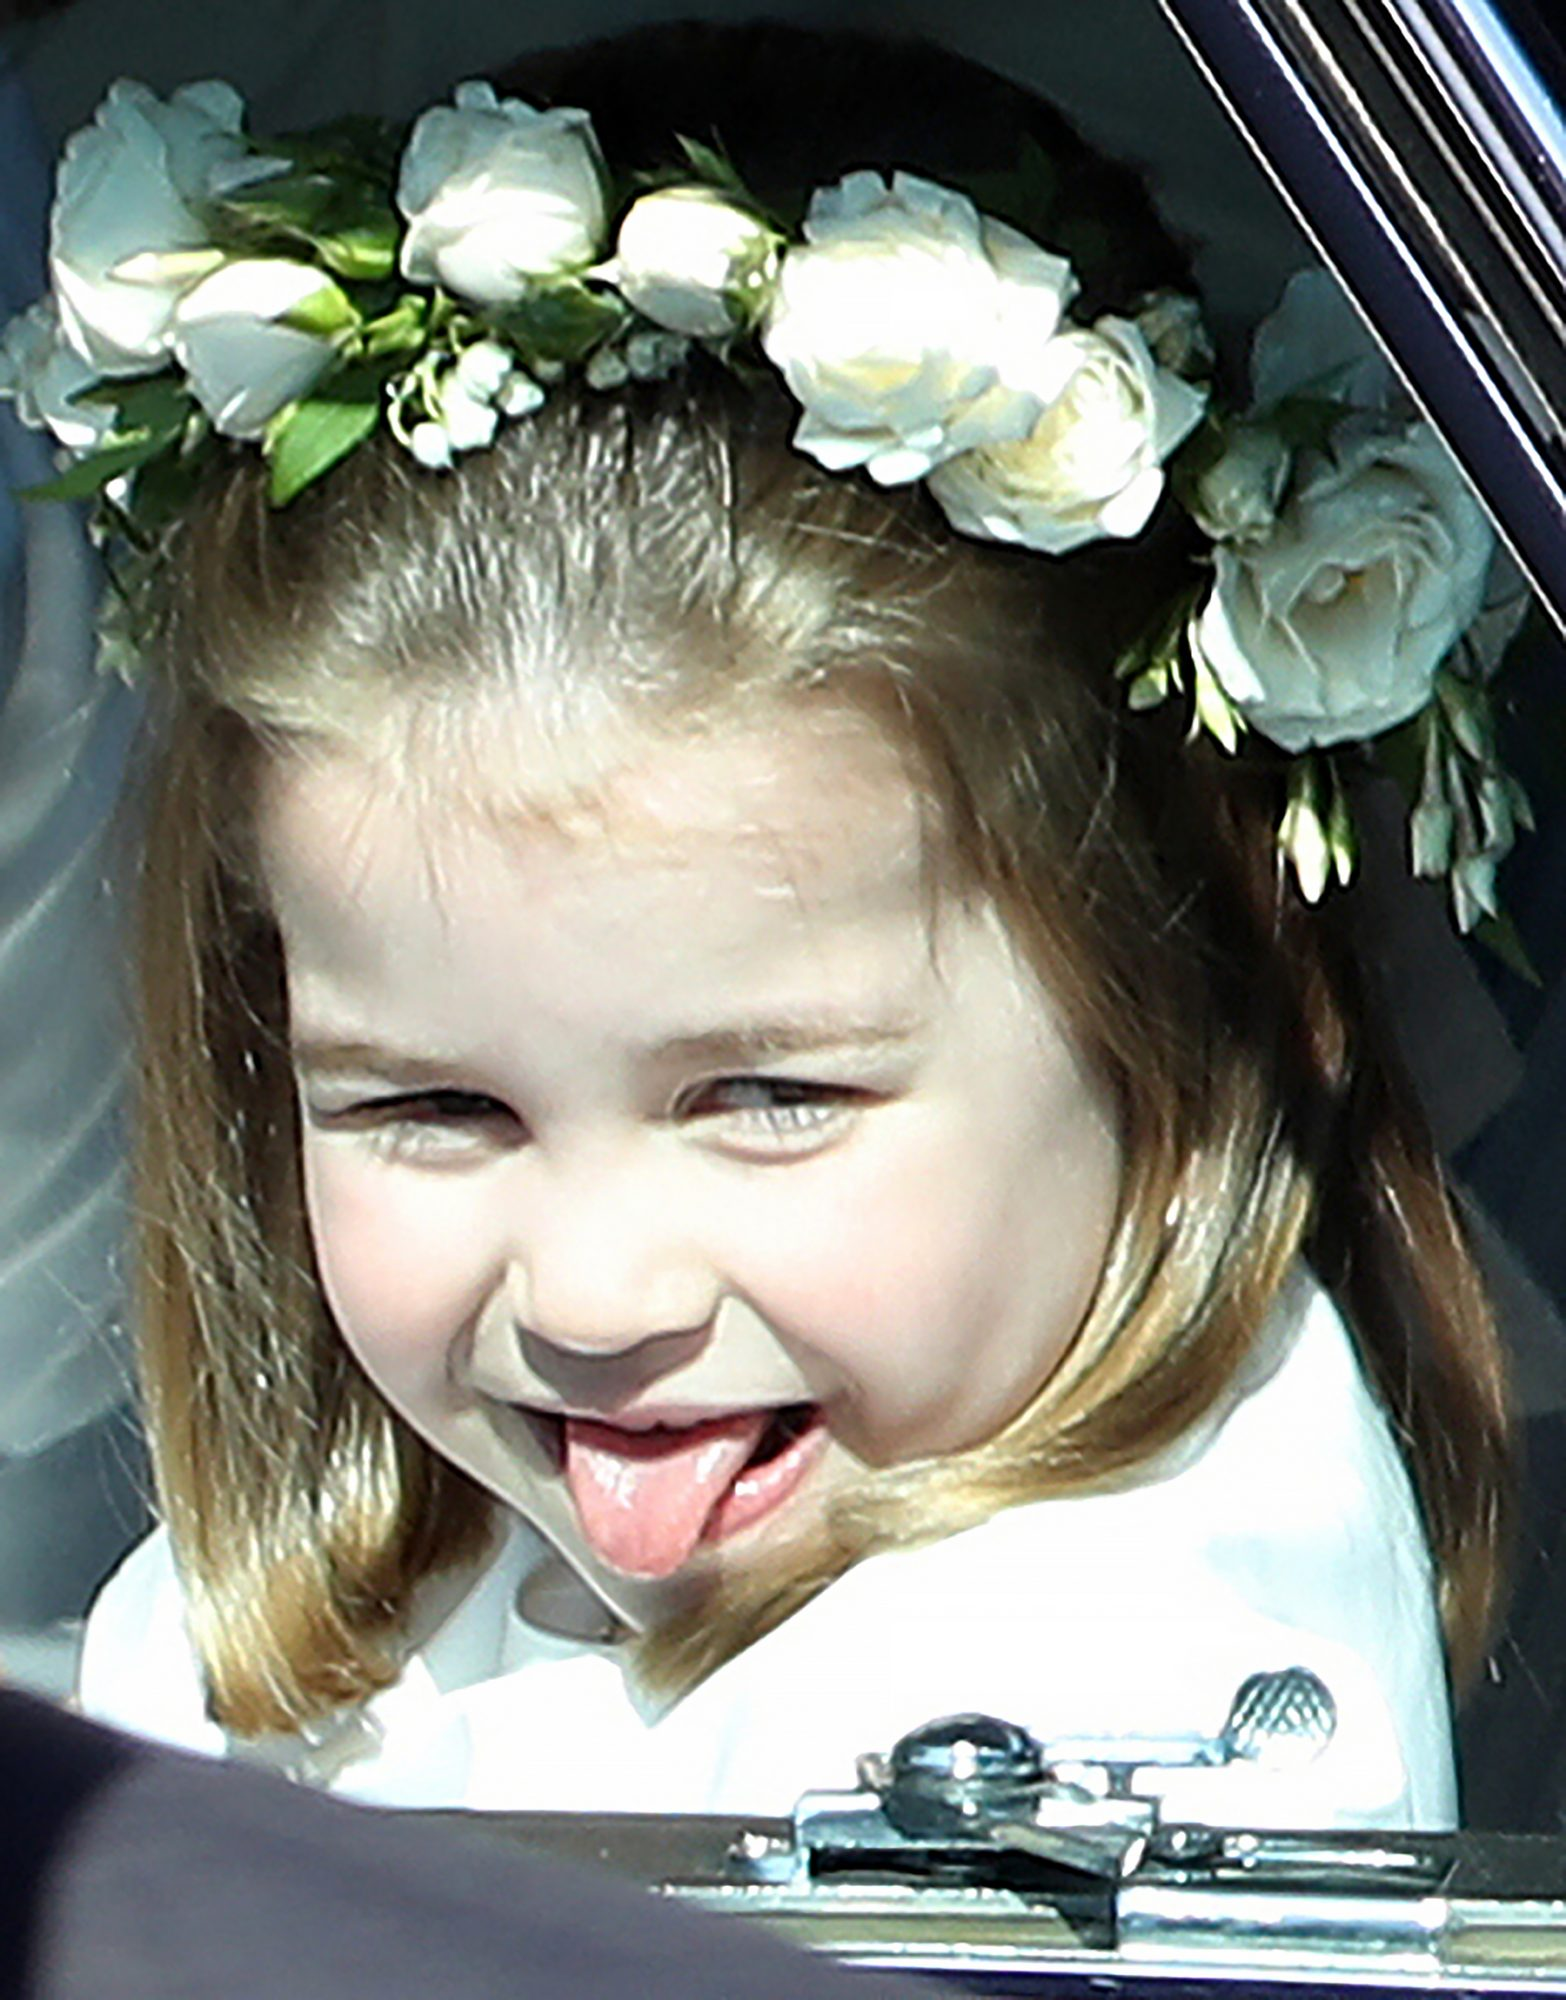 14 Hilariously Adorable Photos of the Royal Family Sticking Their Tongues Out